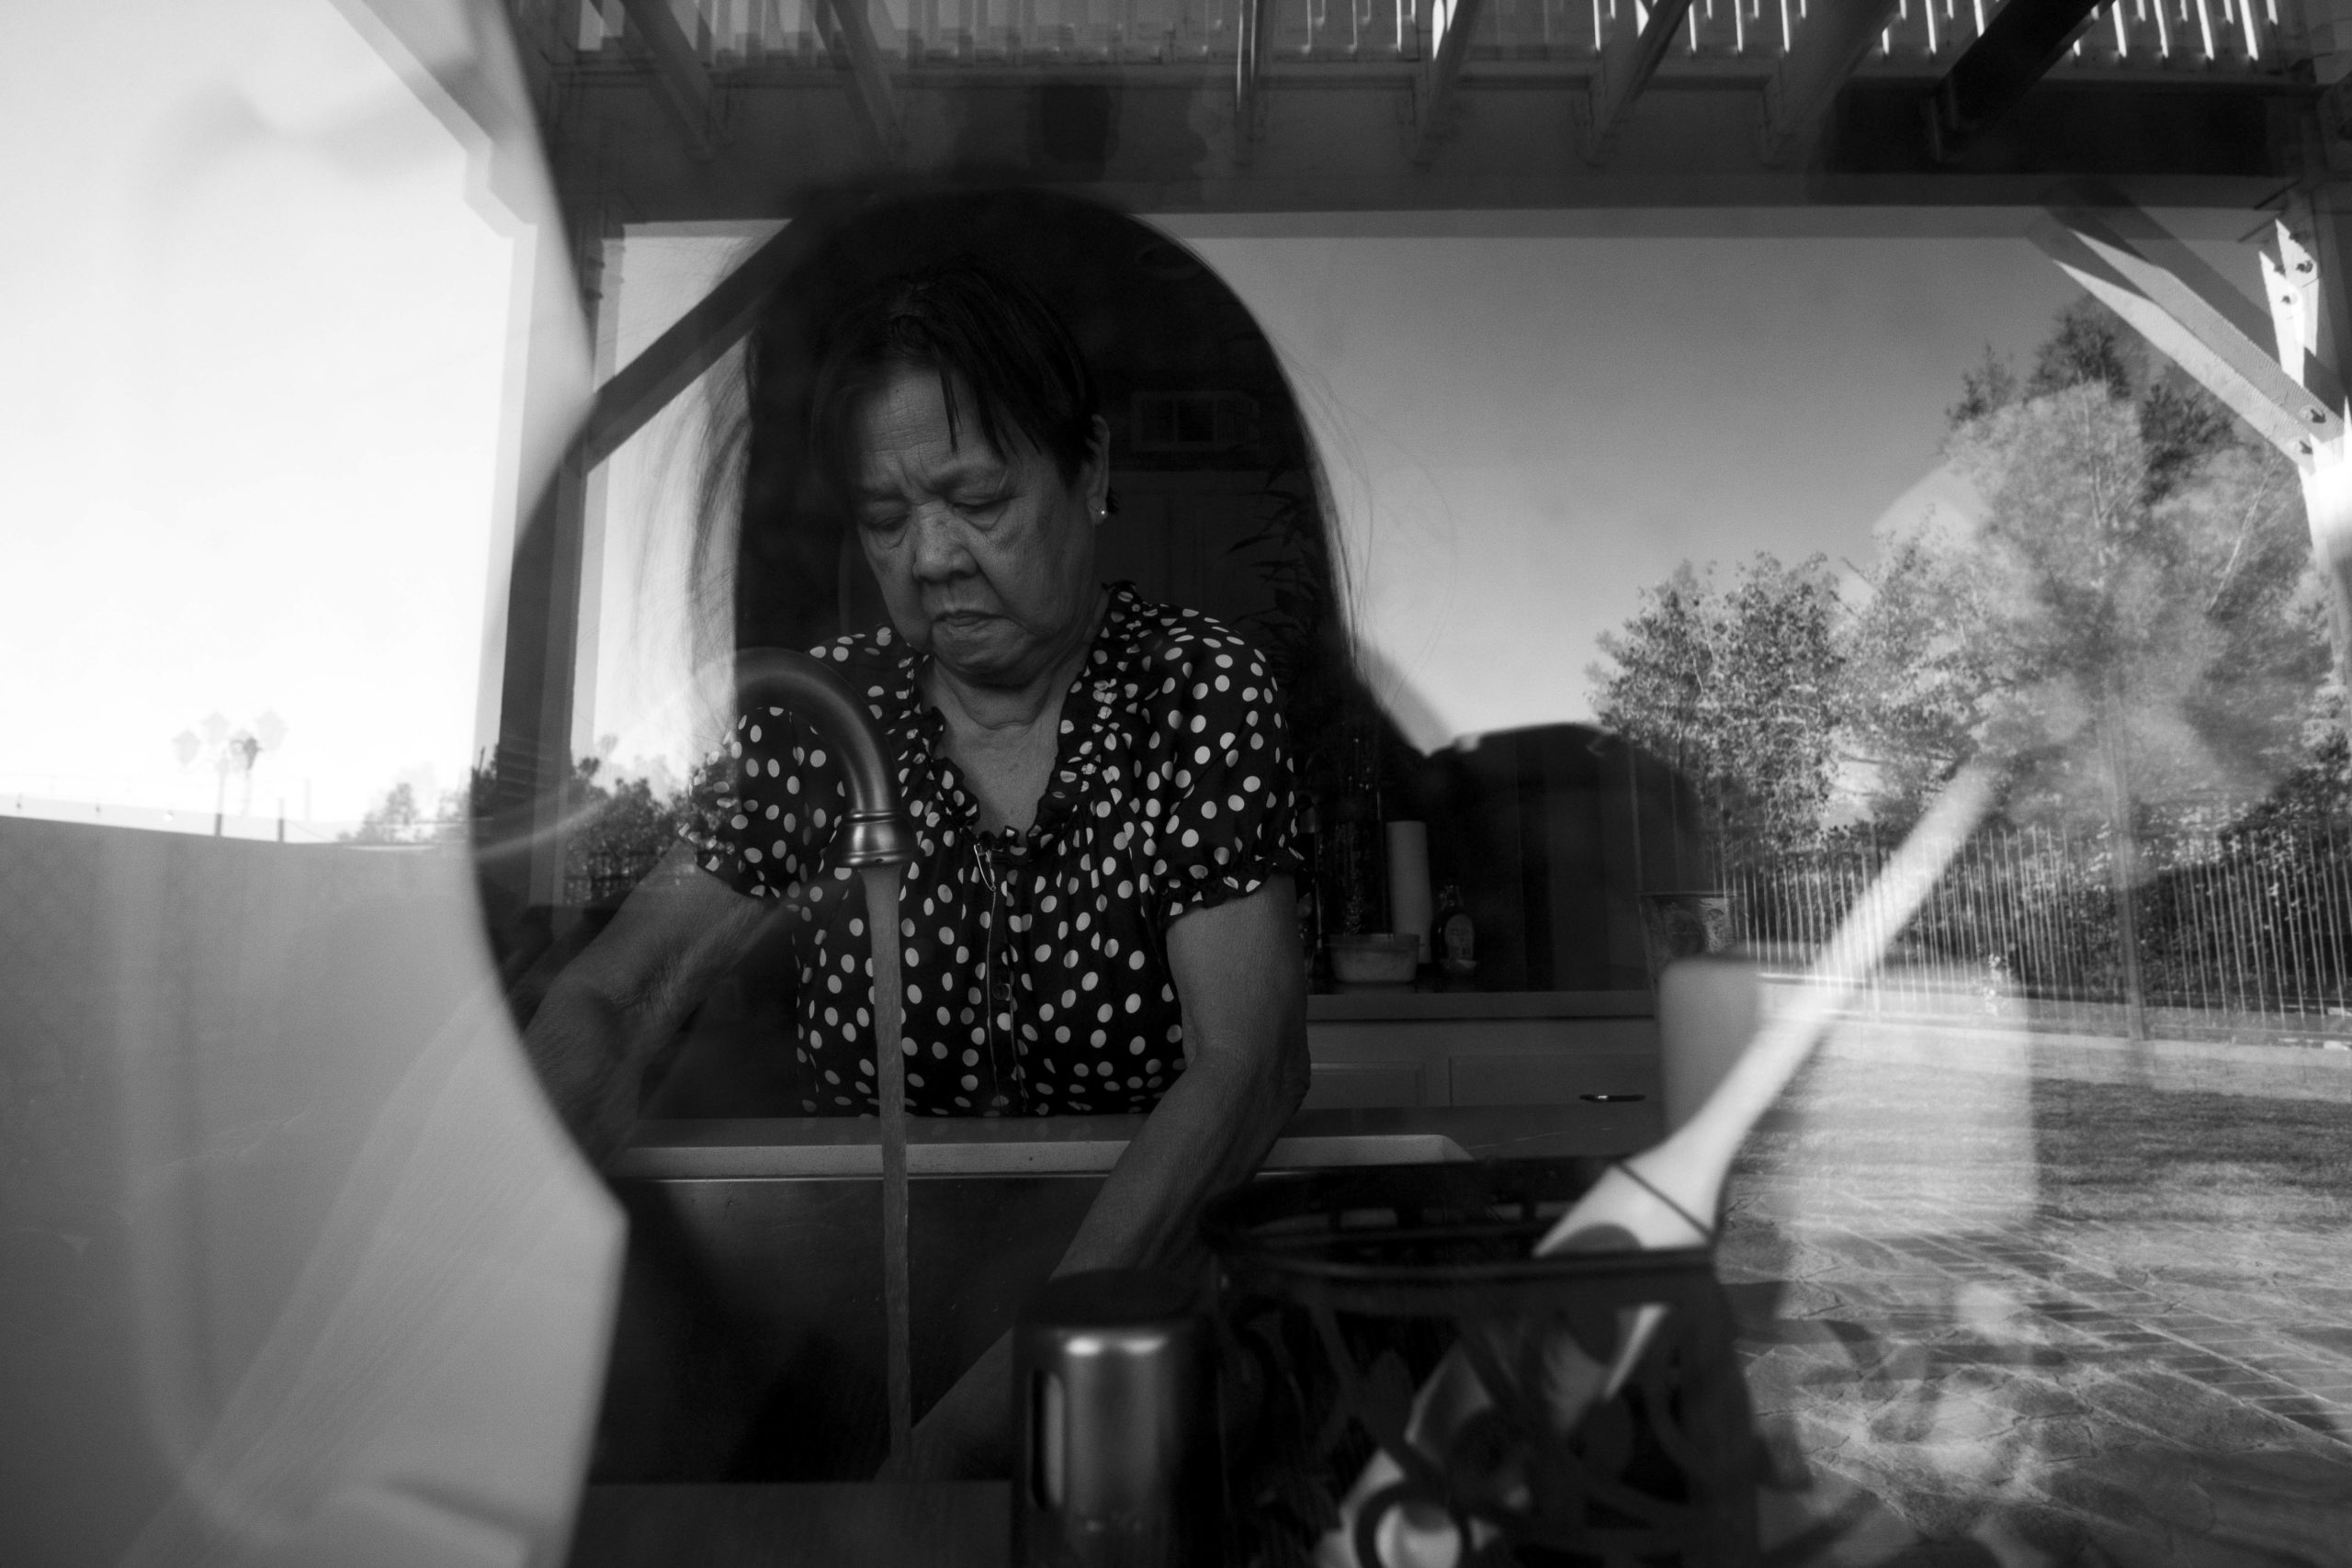 Through a window, a woman is seen washing dishes.